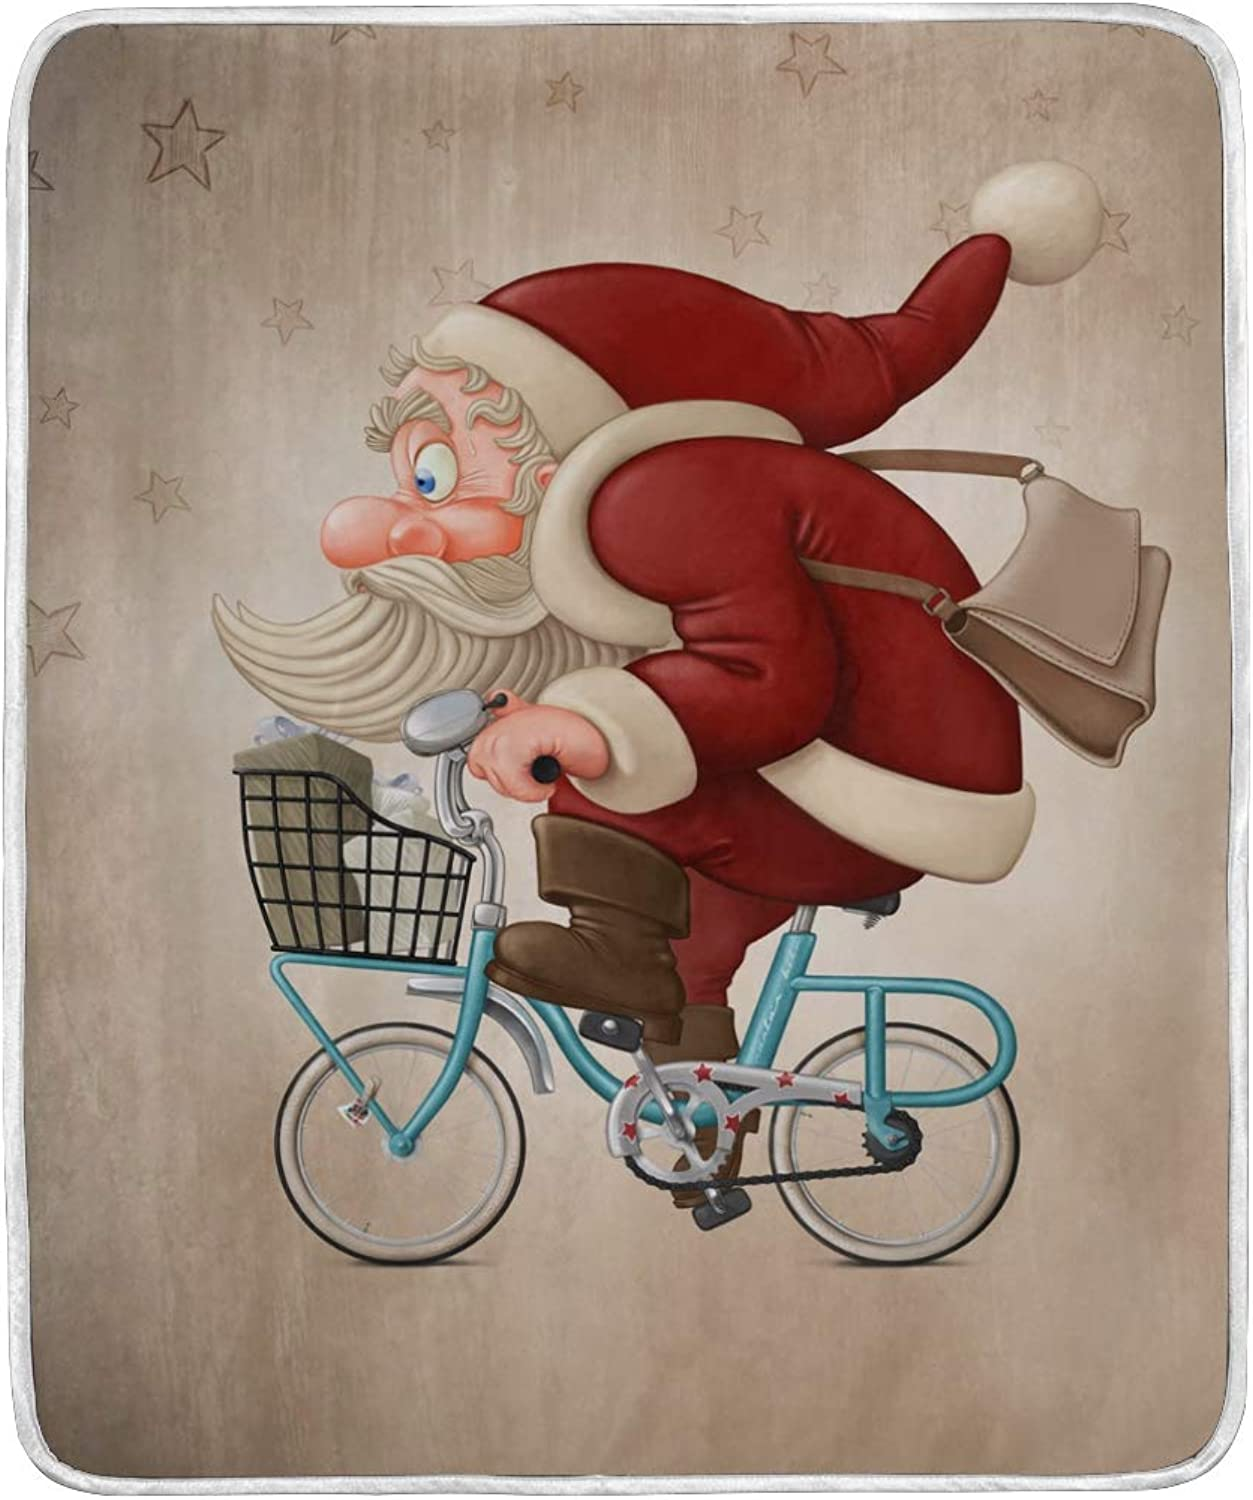 ALAZA Home Decor Vintage Santa Claus Rides Bicycle Christmas Blanket Soft Warm Blankets Bed Couch Sofa Lightweight Travelling Camping 60 x 50 Inch Throw Size Kids Boys Women